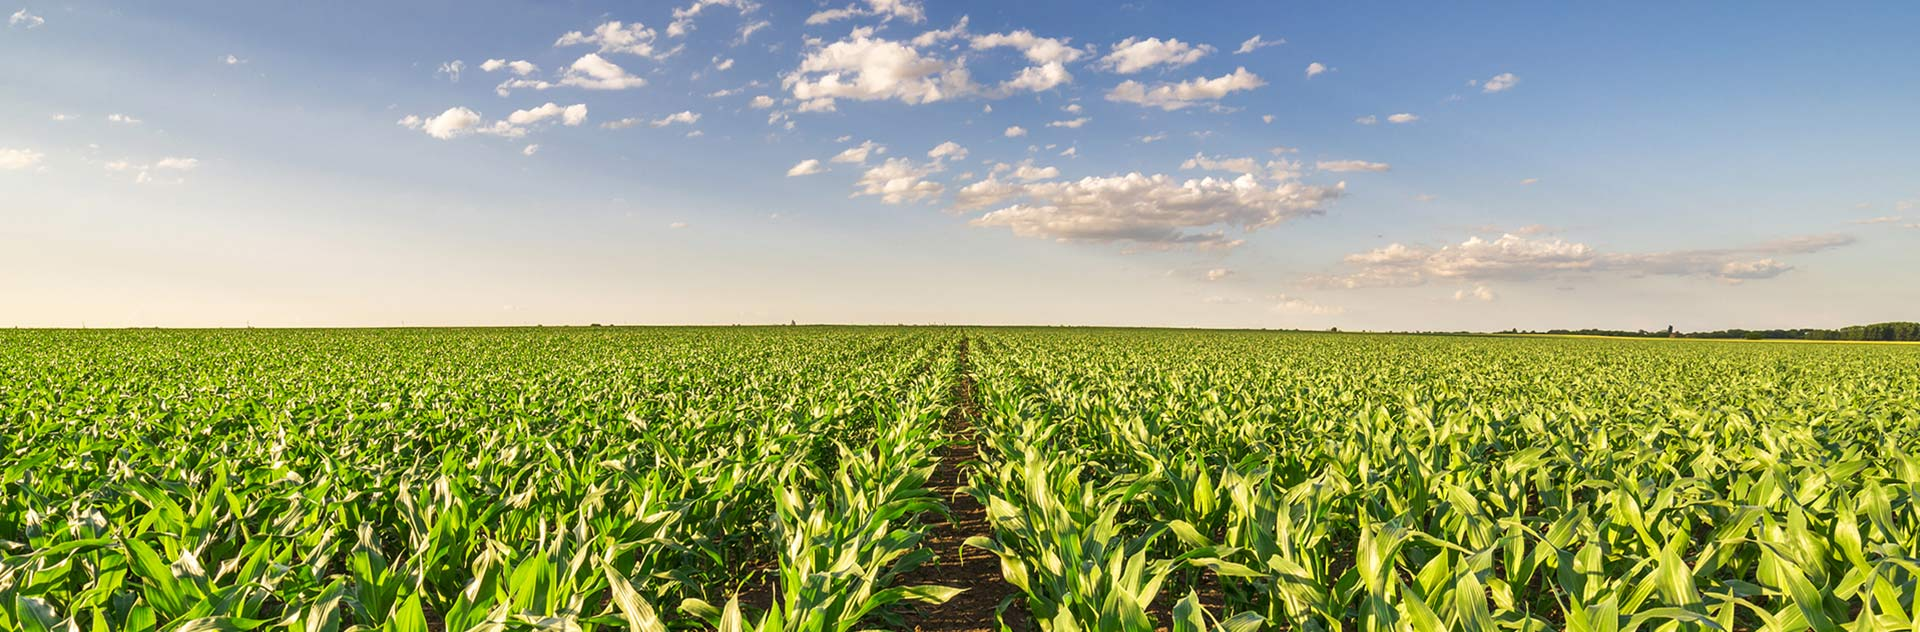 Starting in 2019, Farmstar will deliver recommendations on cultivation of forage and grain corn crop management.